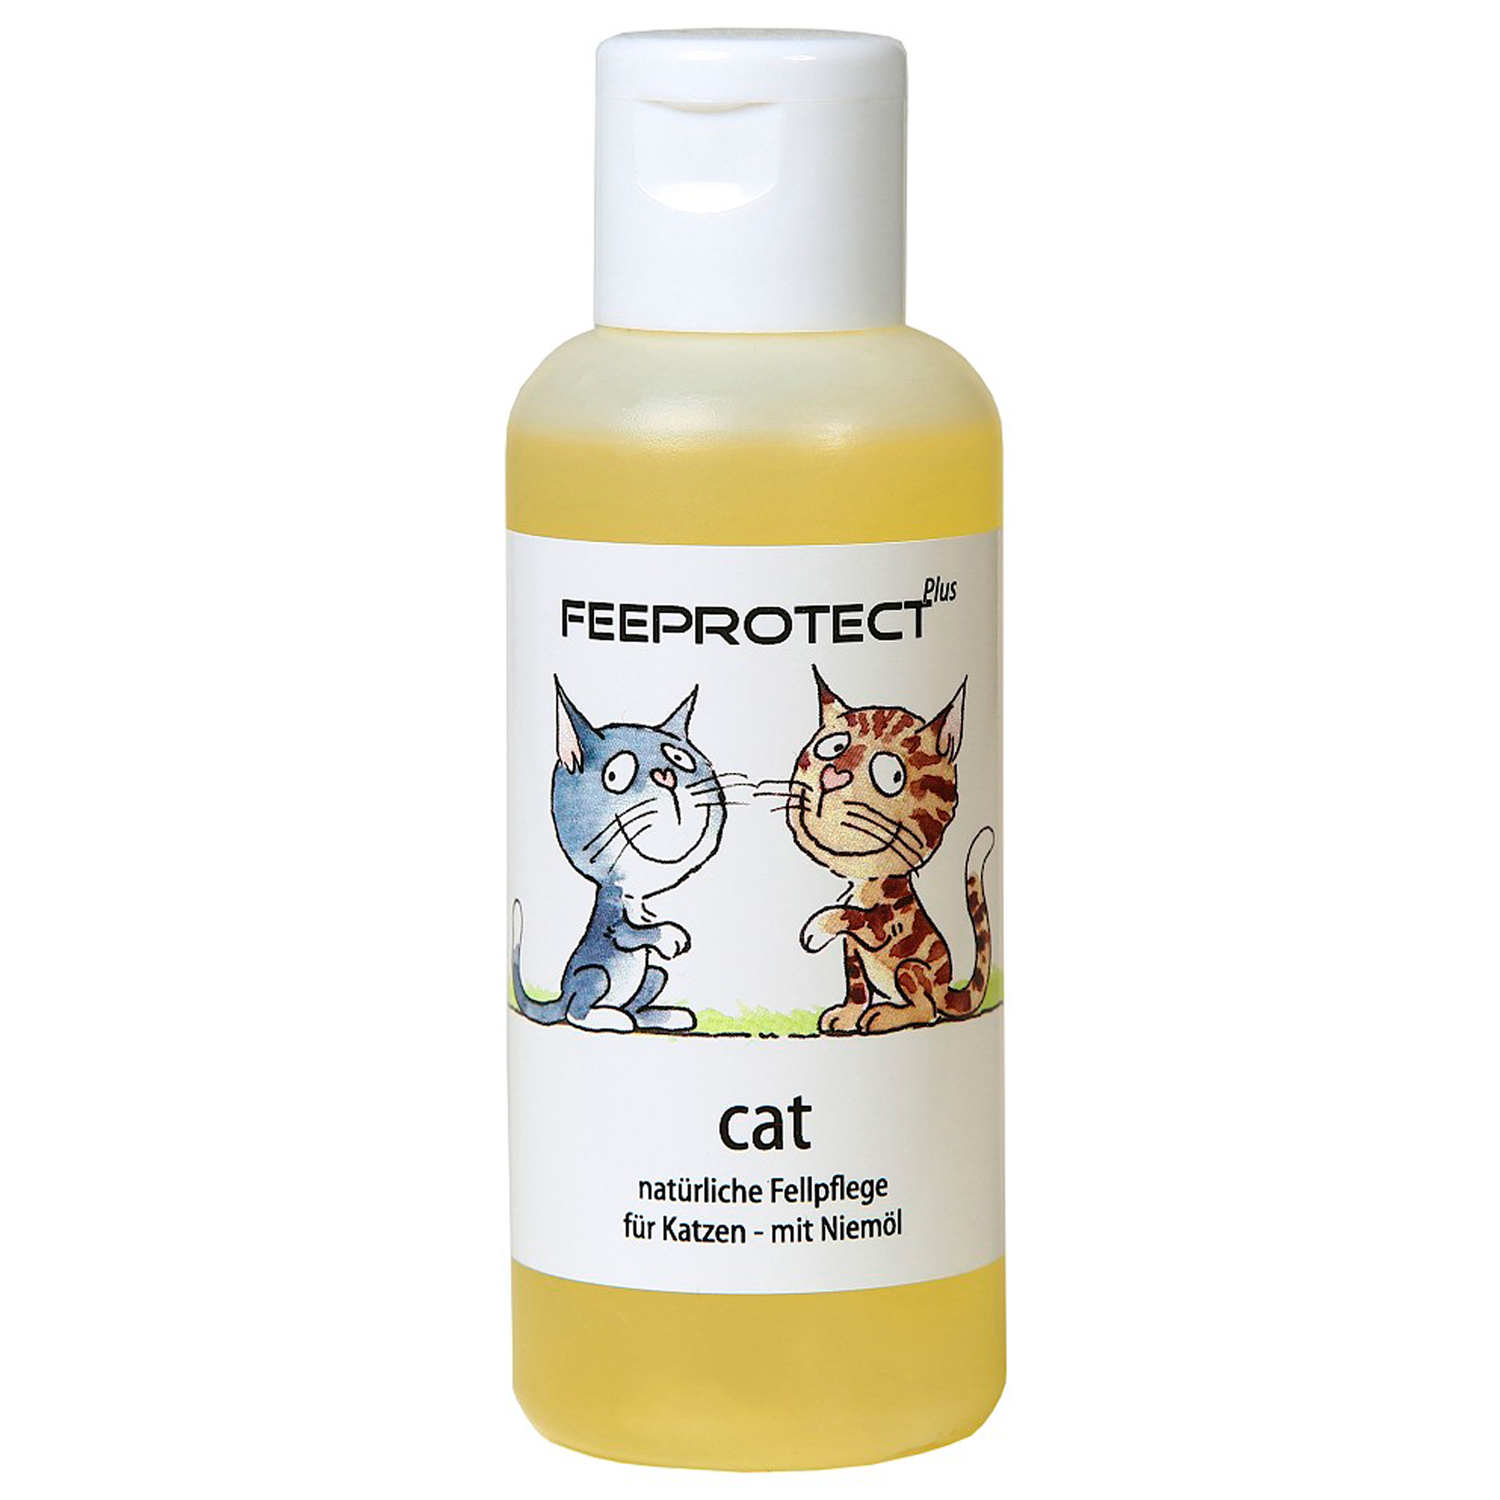 Feeprotect ® cat plus Fellpflege mit Niemöl